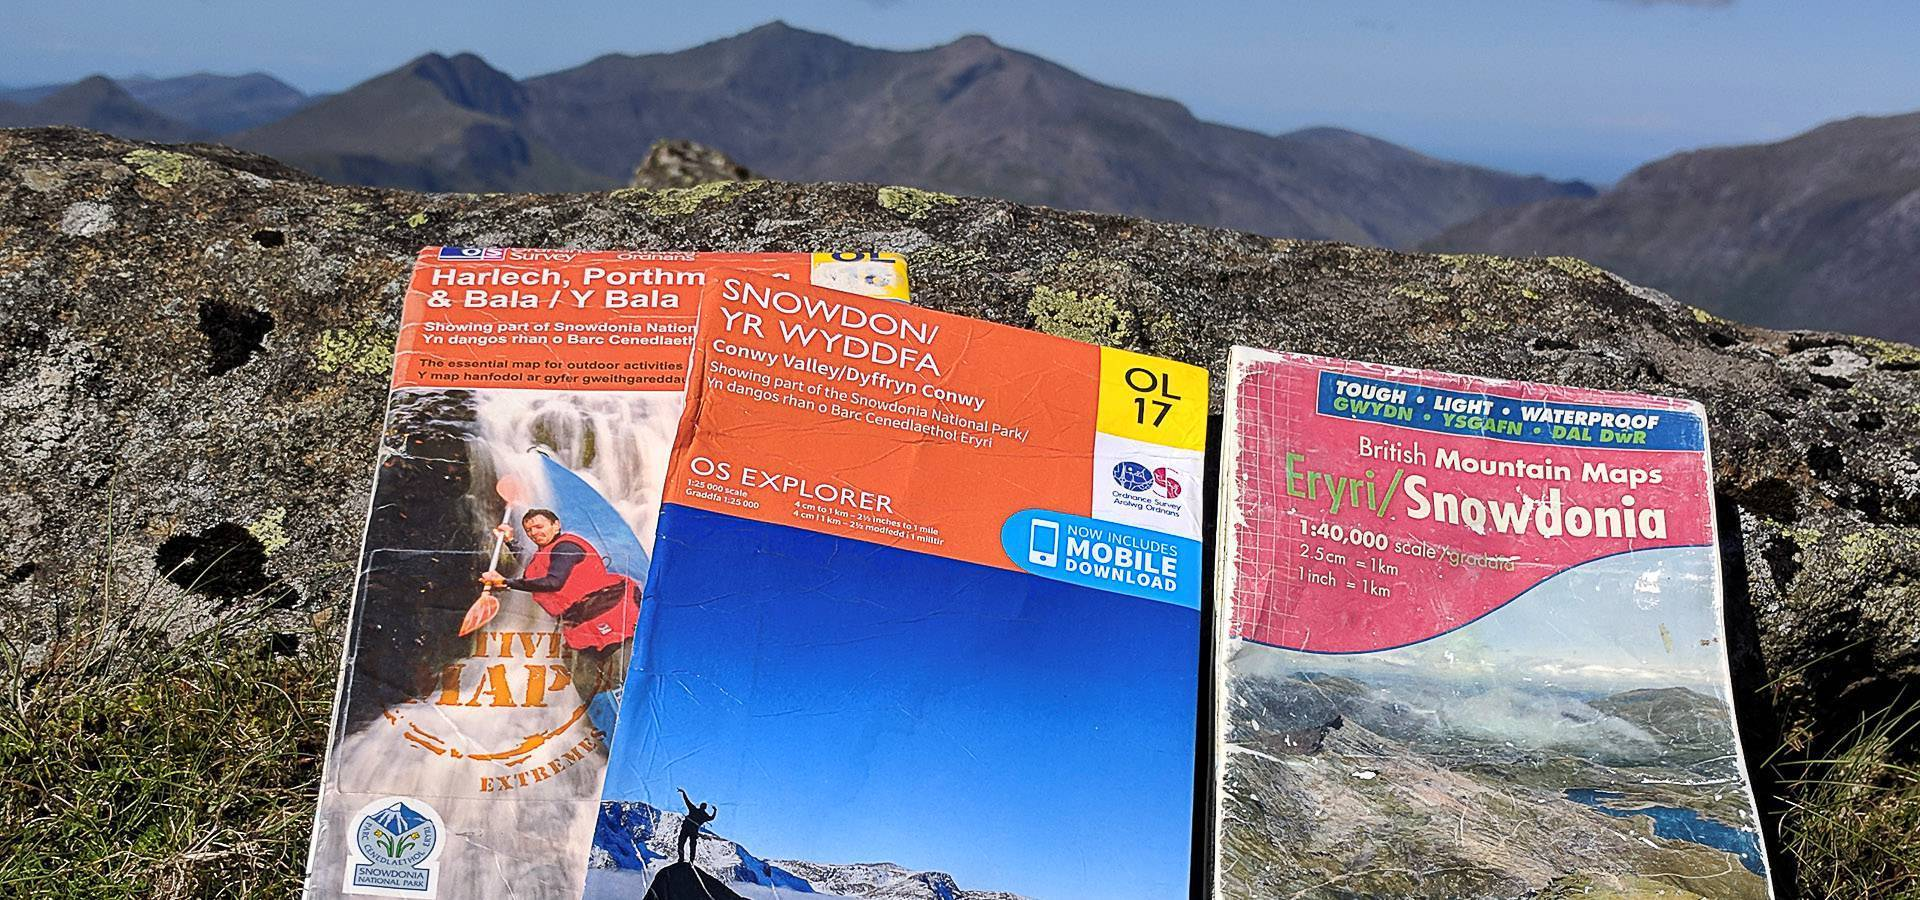 Map Of Uk Hills And Mountains.Snowdon Maps And Access Hints And Tips For Climbing Snowdon Walk